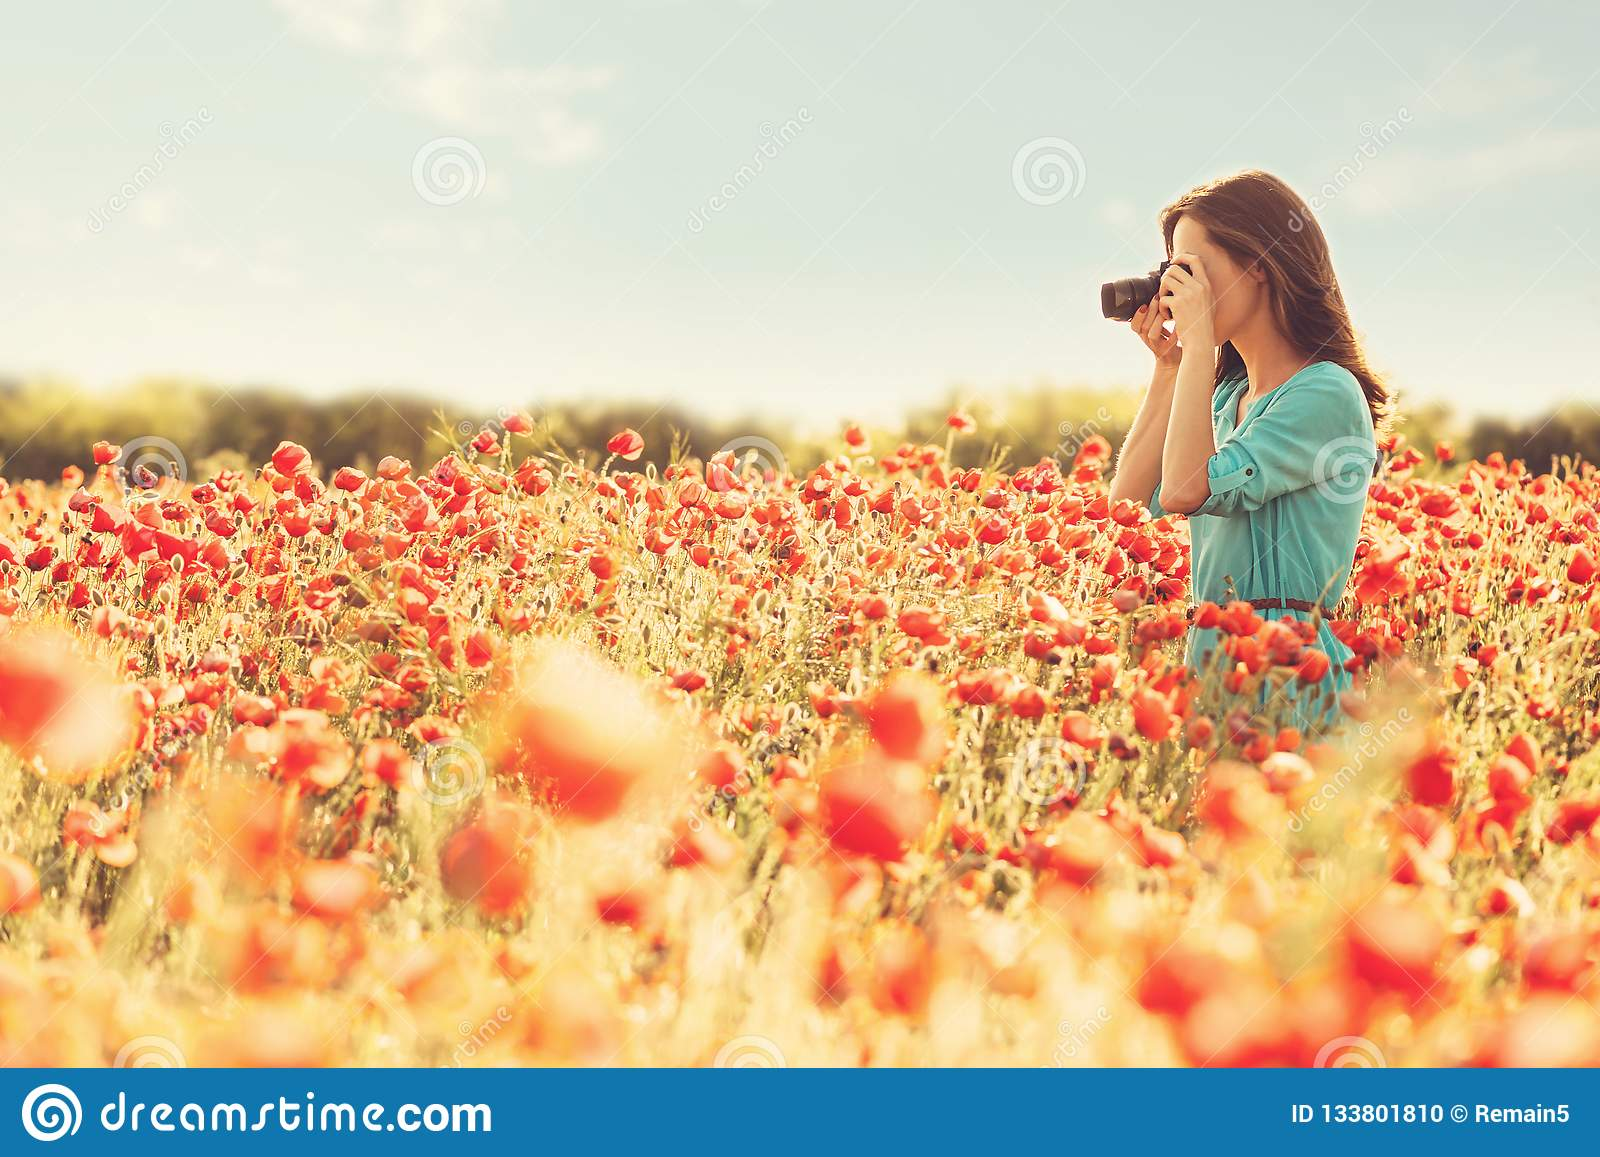 Girl taking photographs with camera in flower meadow.